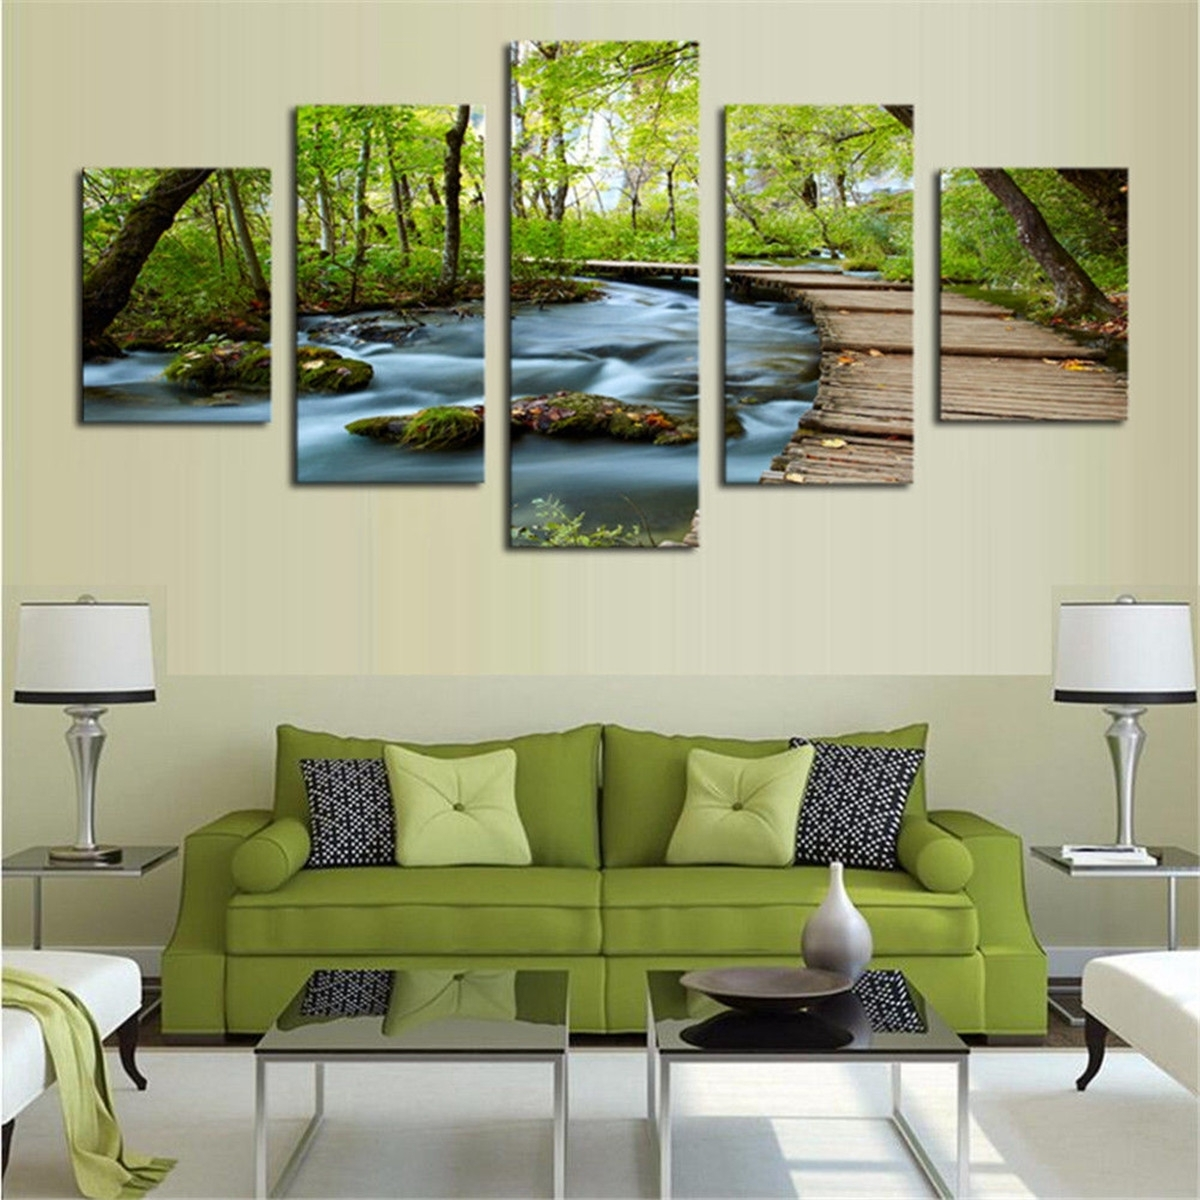 5Pcs Modern Canvas Print Painting Nature Picture Wall Art Home Decor In 2017 Nature Wall Art (View 7 of 20)